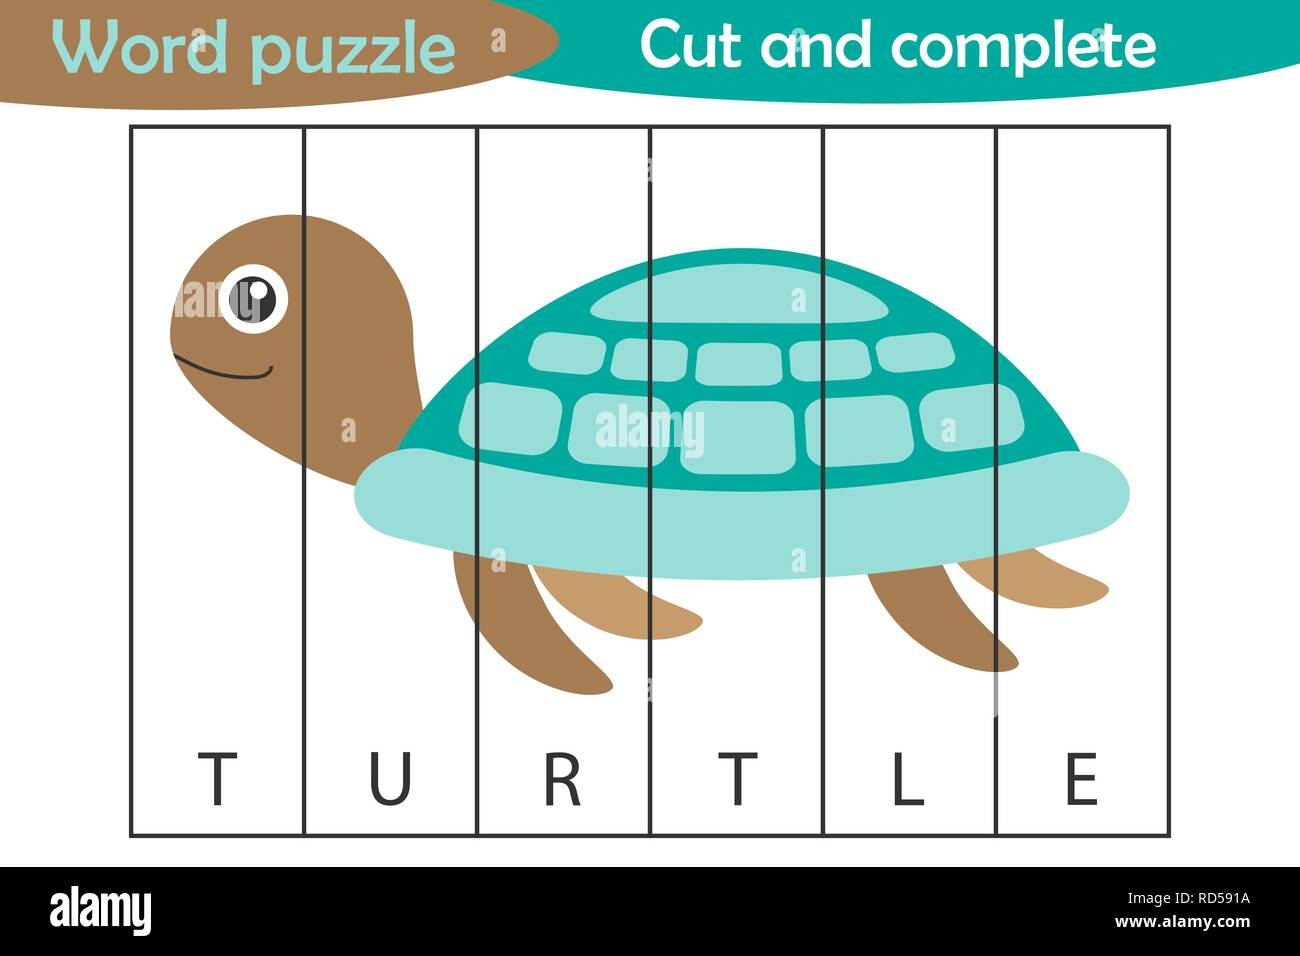 Word puzzle, turtle in cartoon style, education game for development of preschool children, use scissors, cut parts of the image and complete the pict - Stock Vector